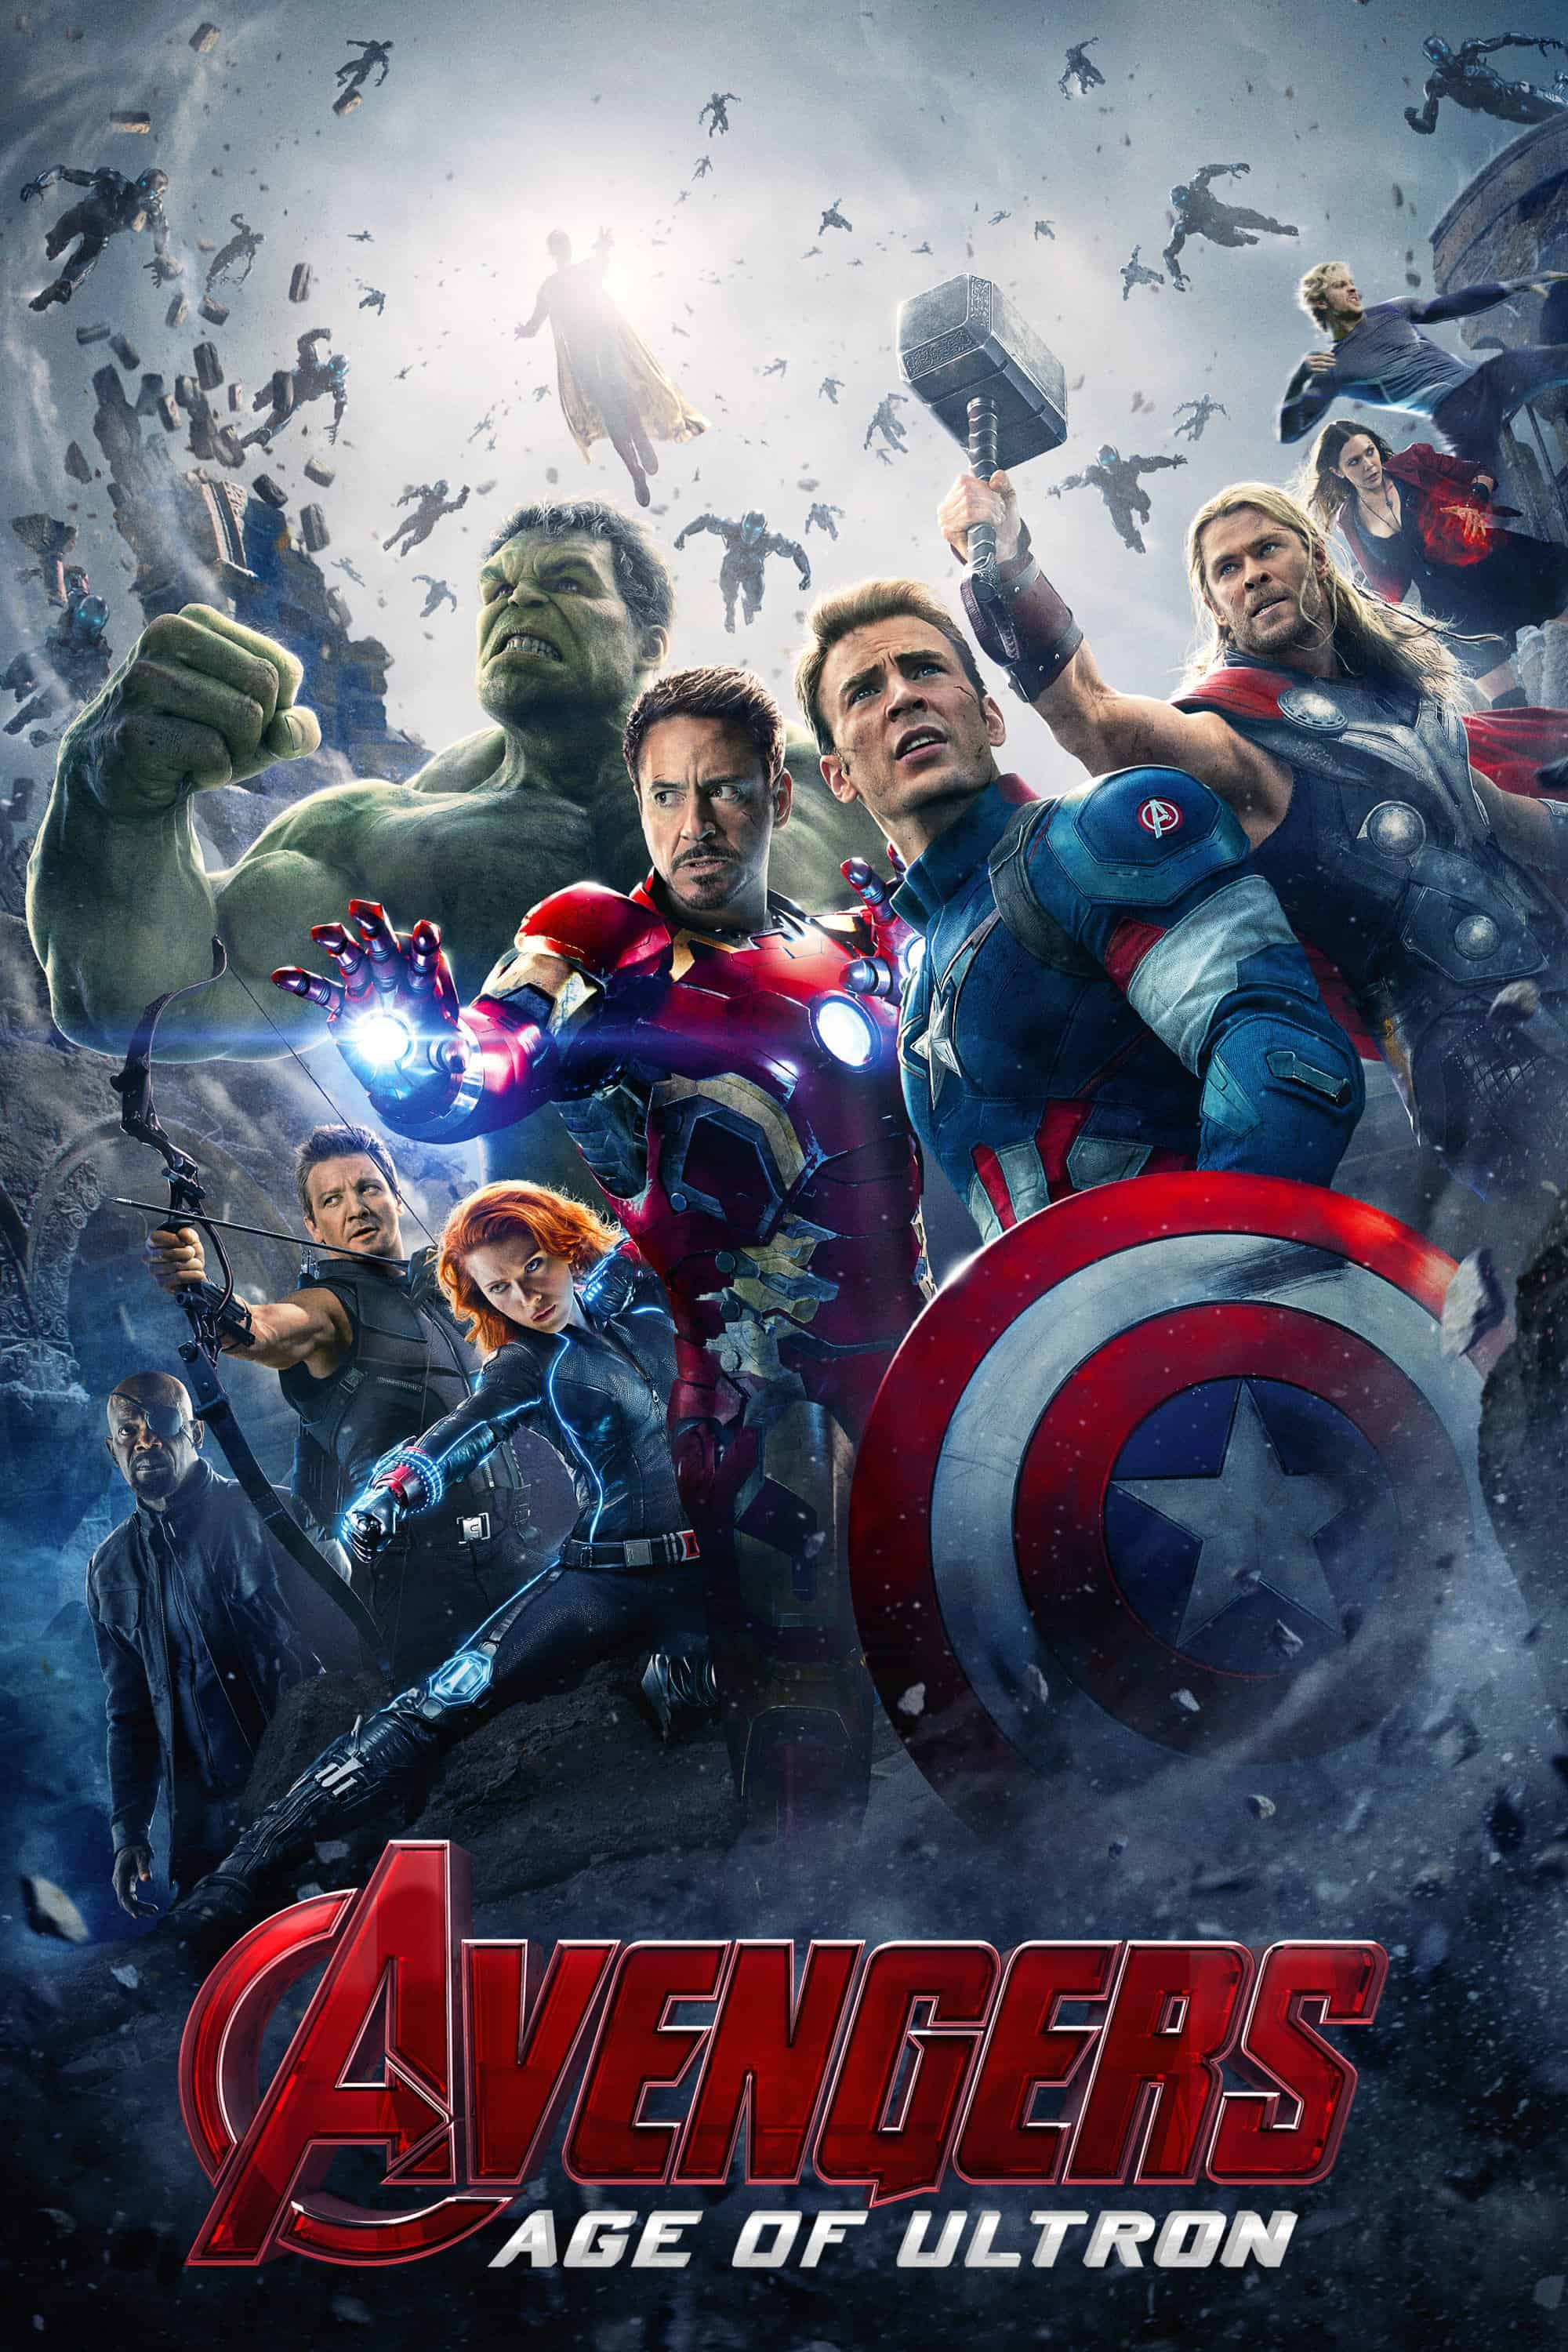 Avengers: Age of Ultron, 2015